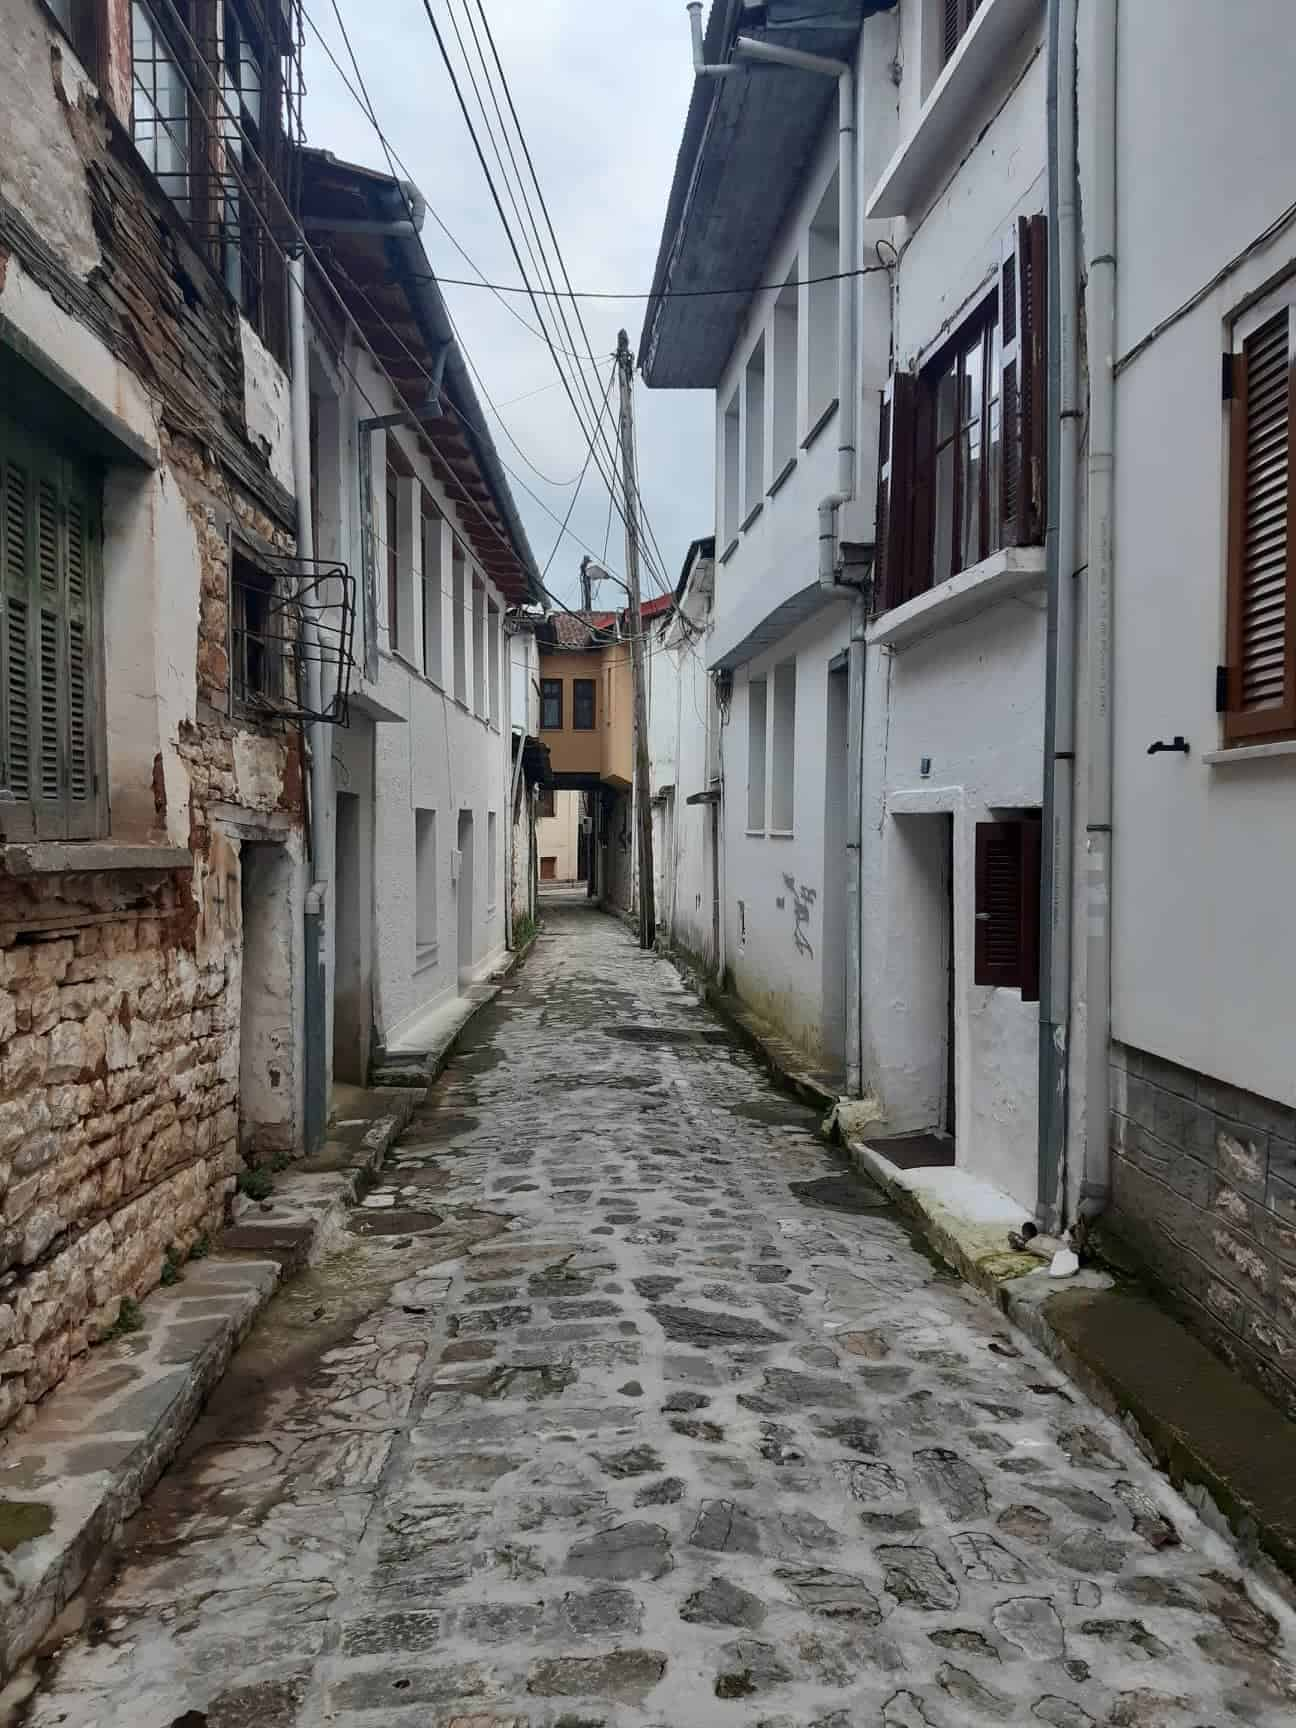 Narrow cobbled streets of Ioannina